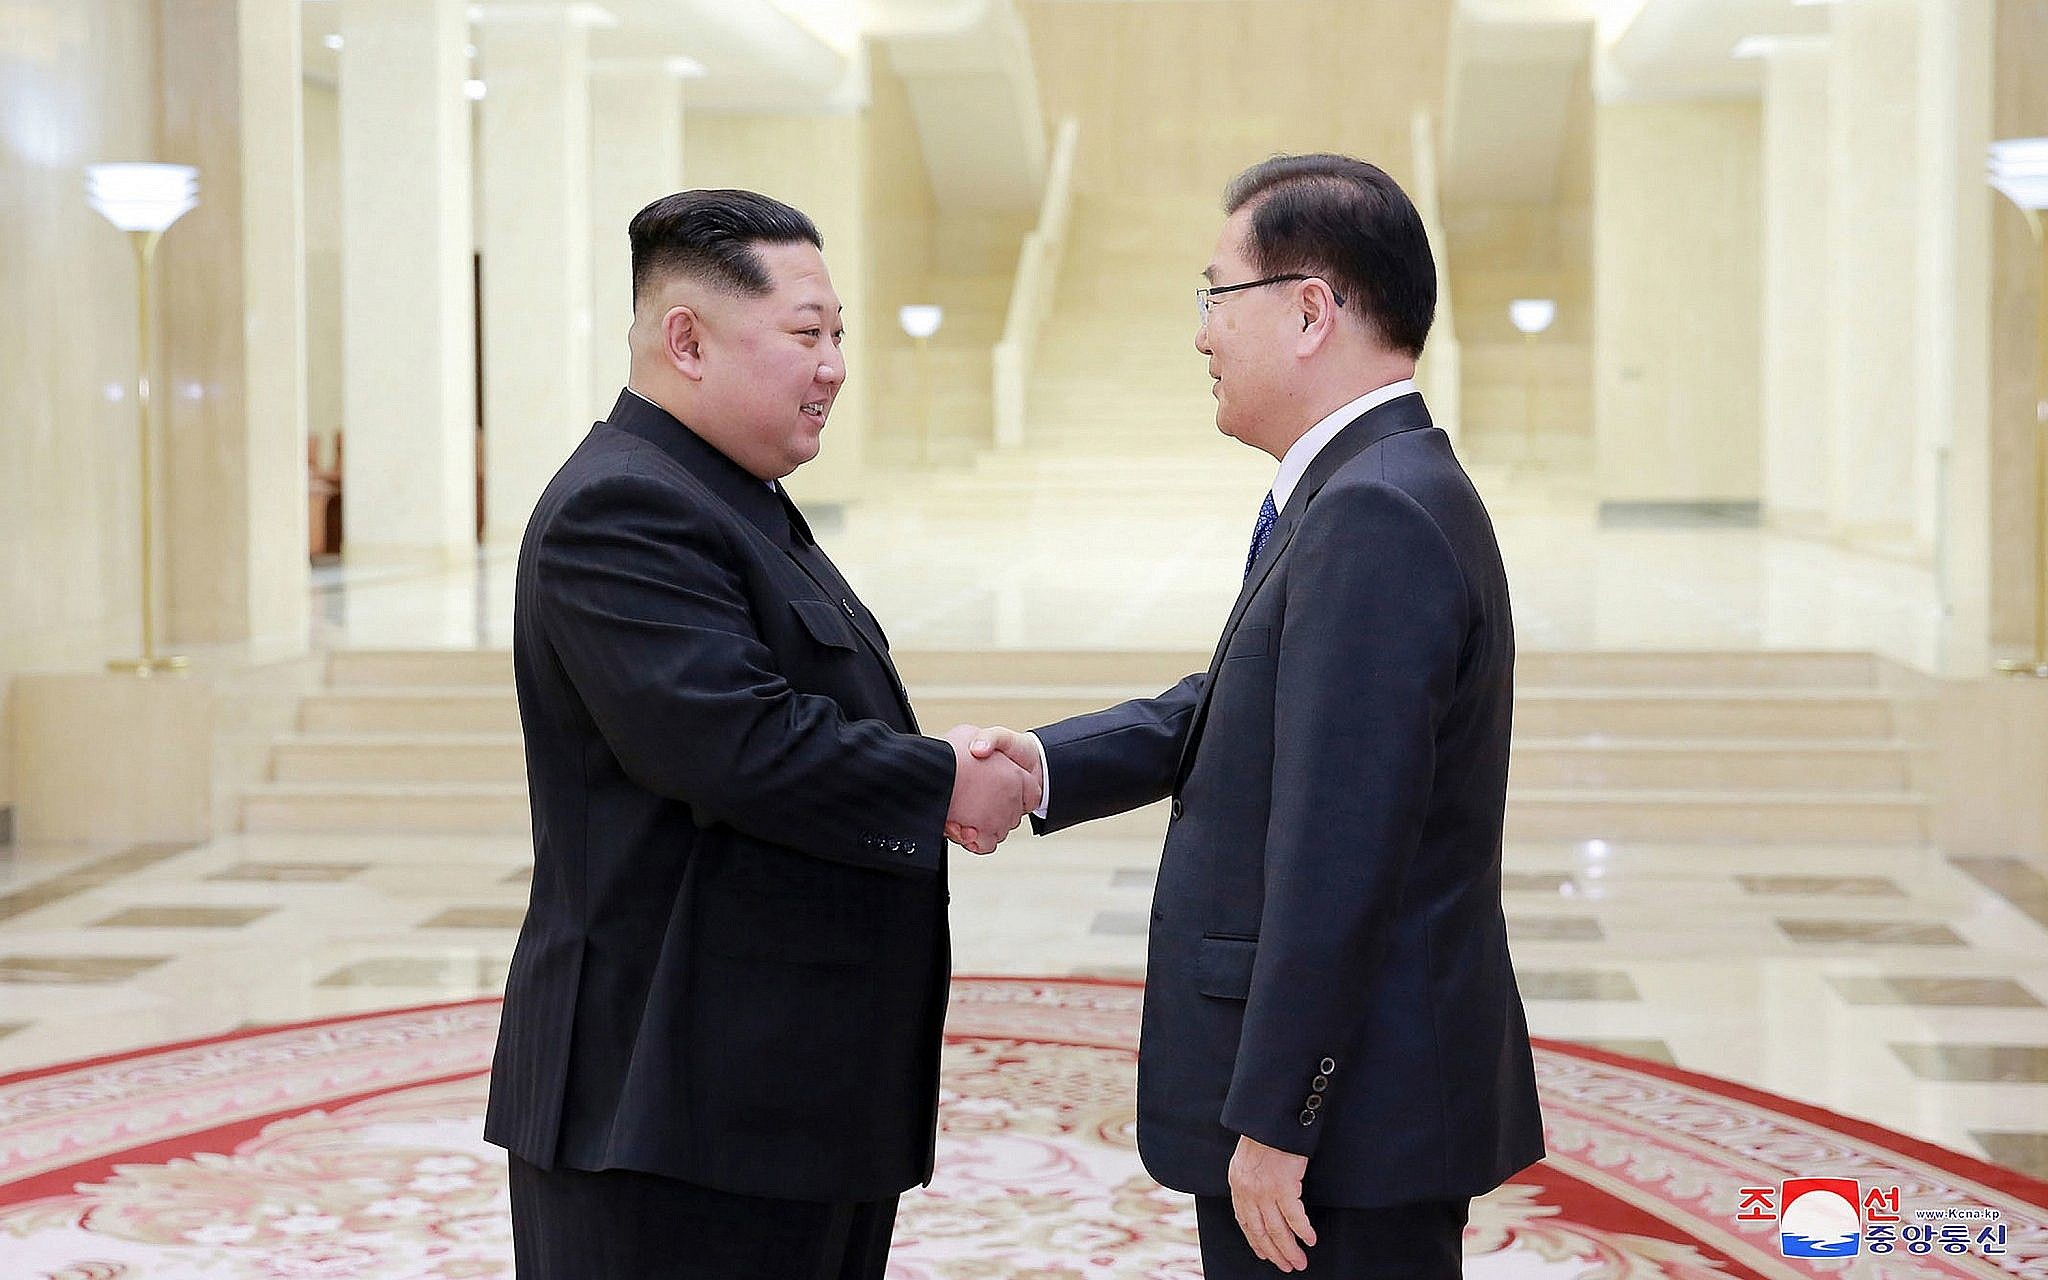 North korea agrees to inter korean talks next week the times of israel in this photo from march 5 2018 provided by the north korean government m4hsunfo